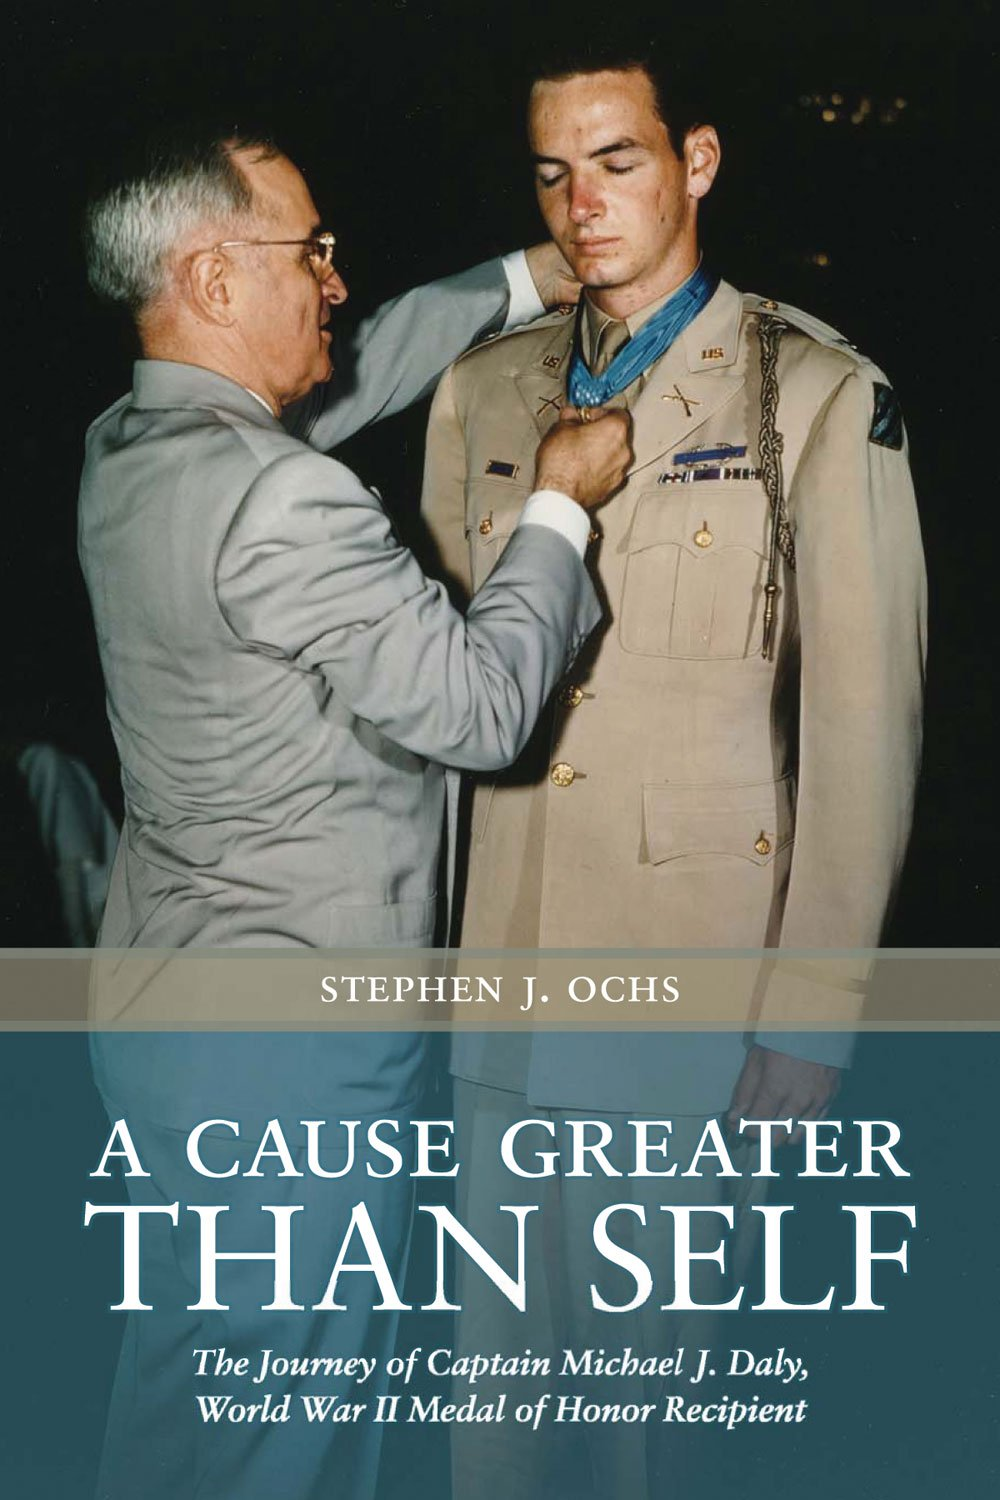 Download A Cause Greater than Self: The Journey of Captain Michael J. Daly, World War II Medal of Honor Recipient (Williams-Ford Texas A&M University Military History Series) PDF